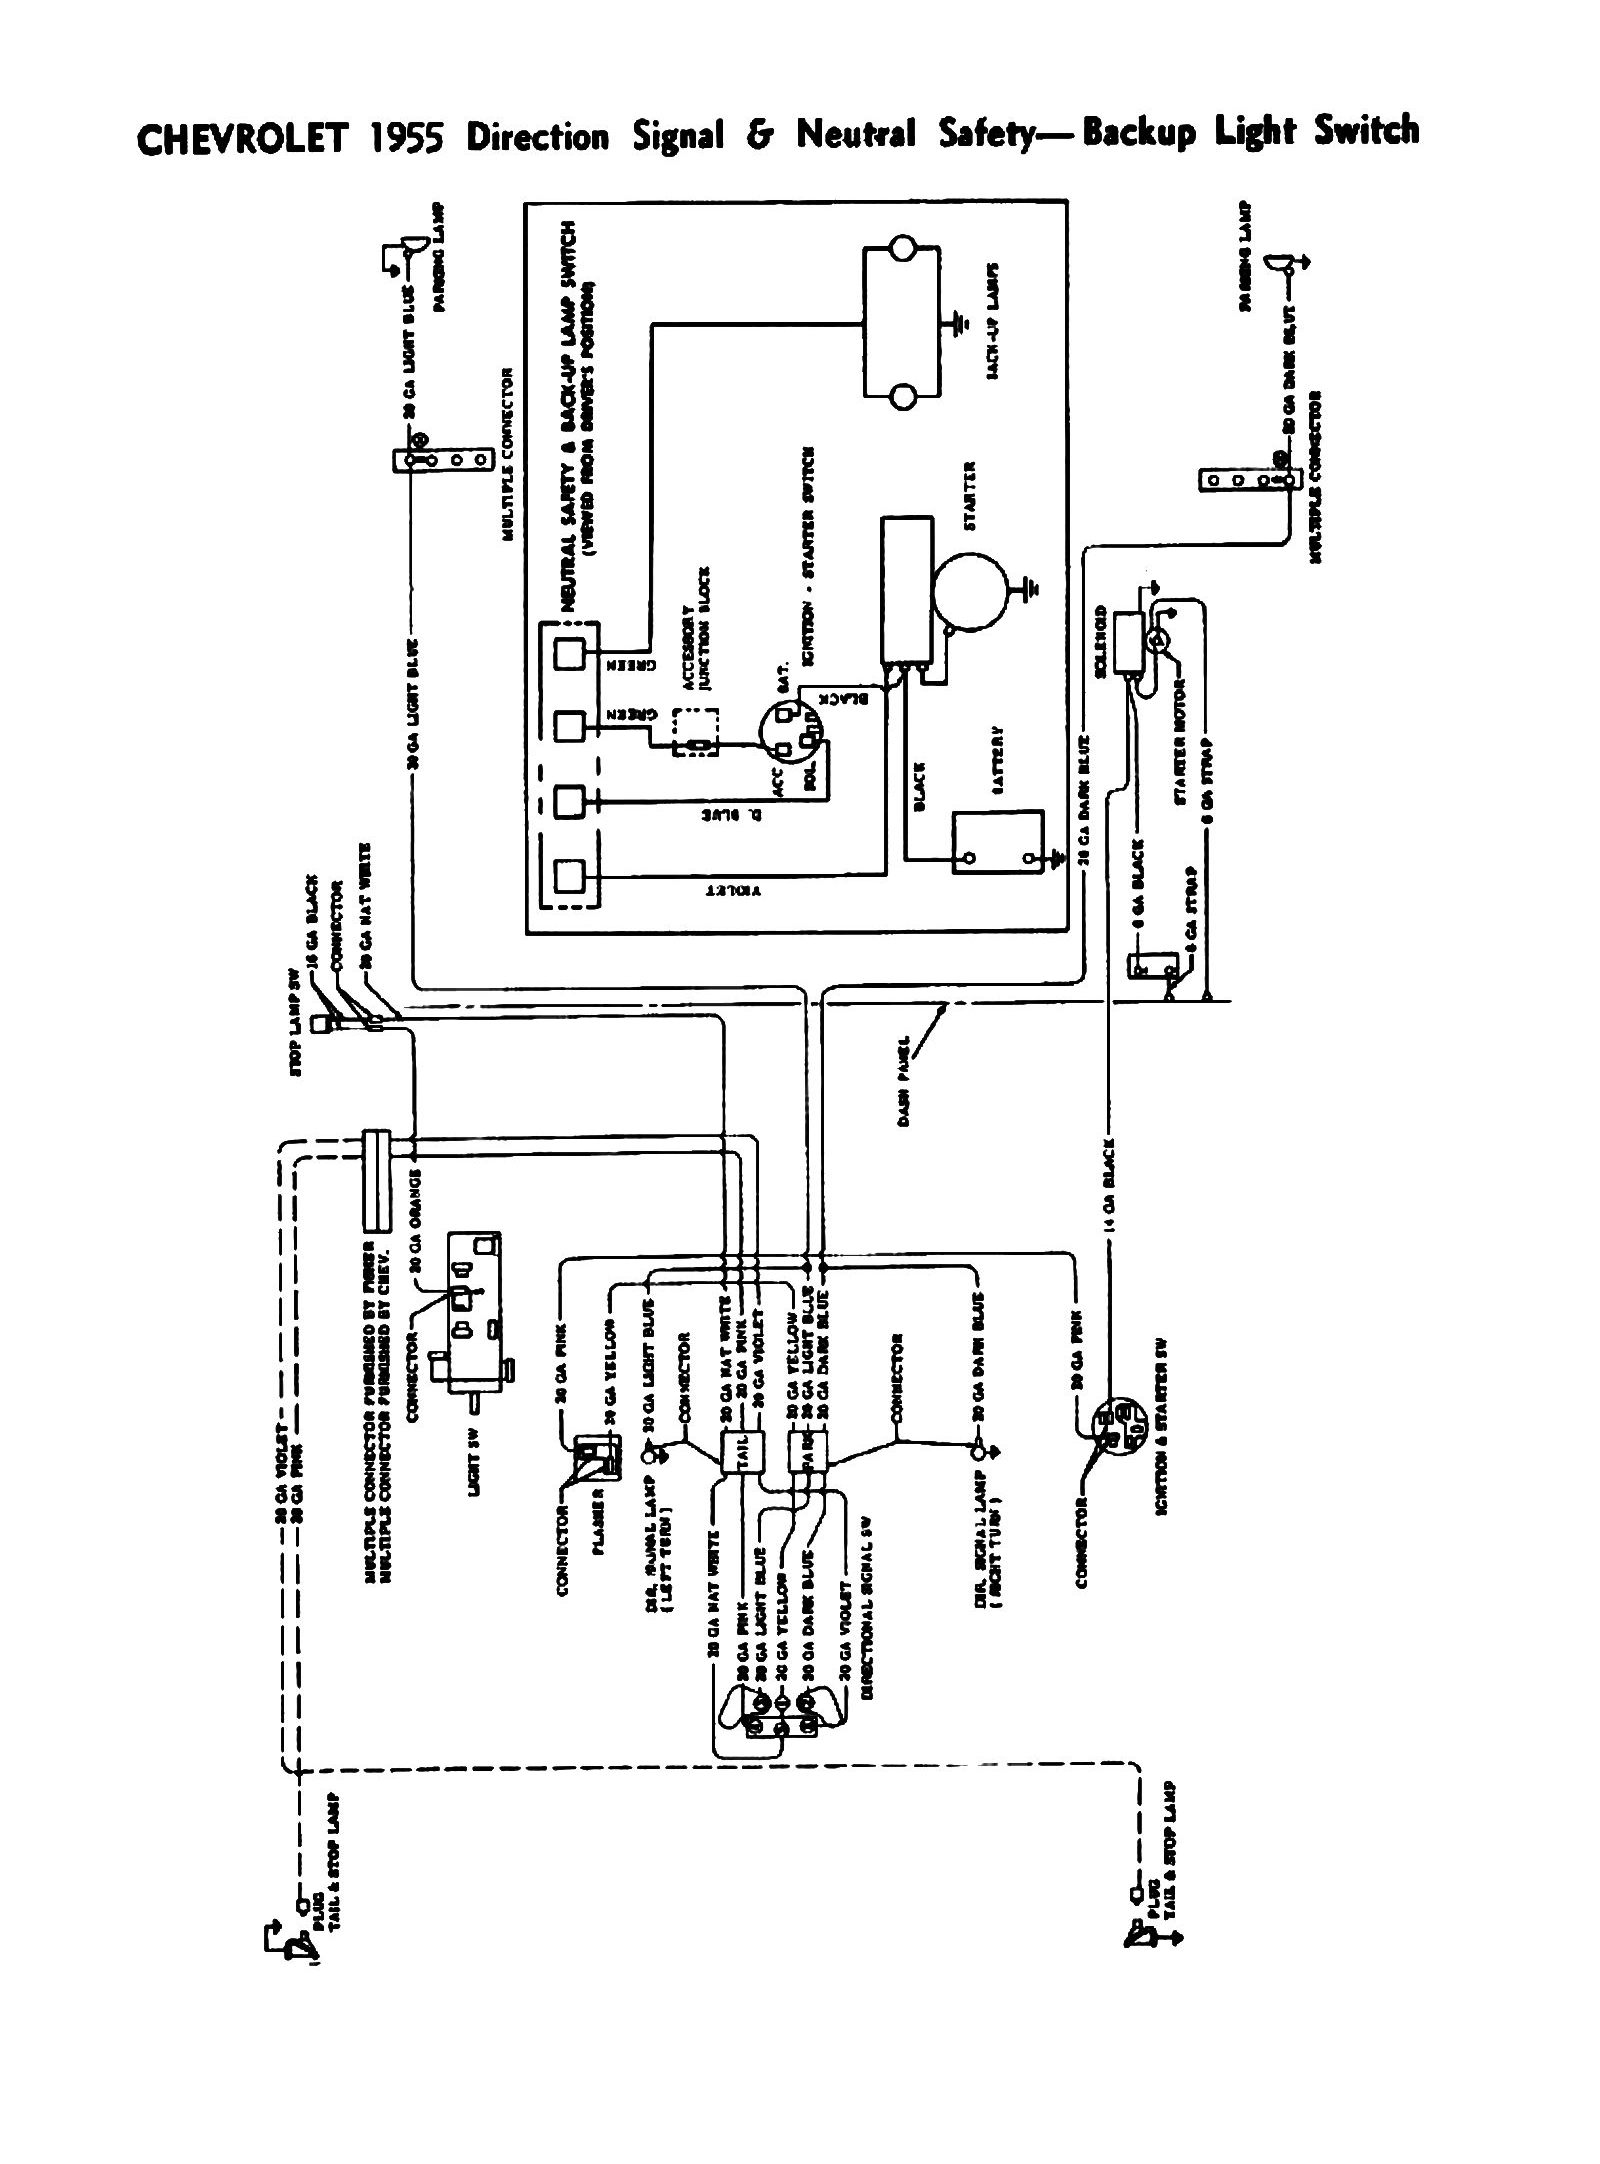 55signal chevrolet ignition wiring diagram chevrolet ignition wiring GM Ignition Switch Wiring Diagram at reclaimingppi.co